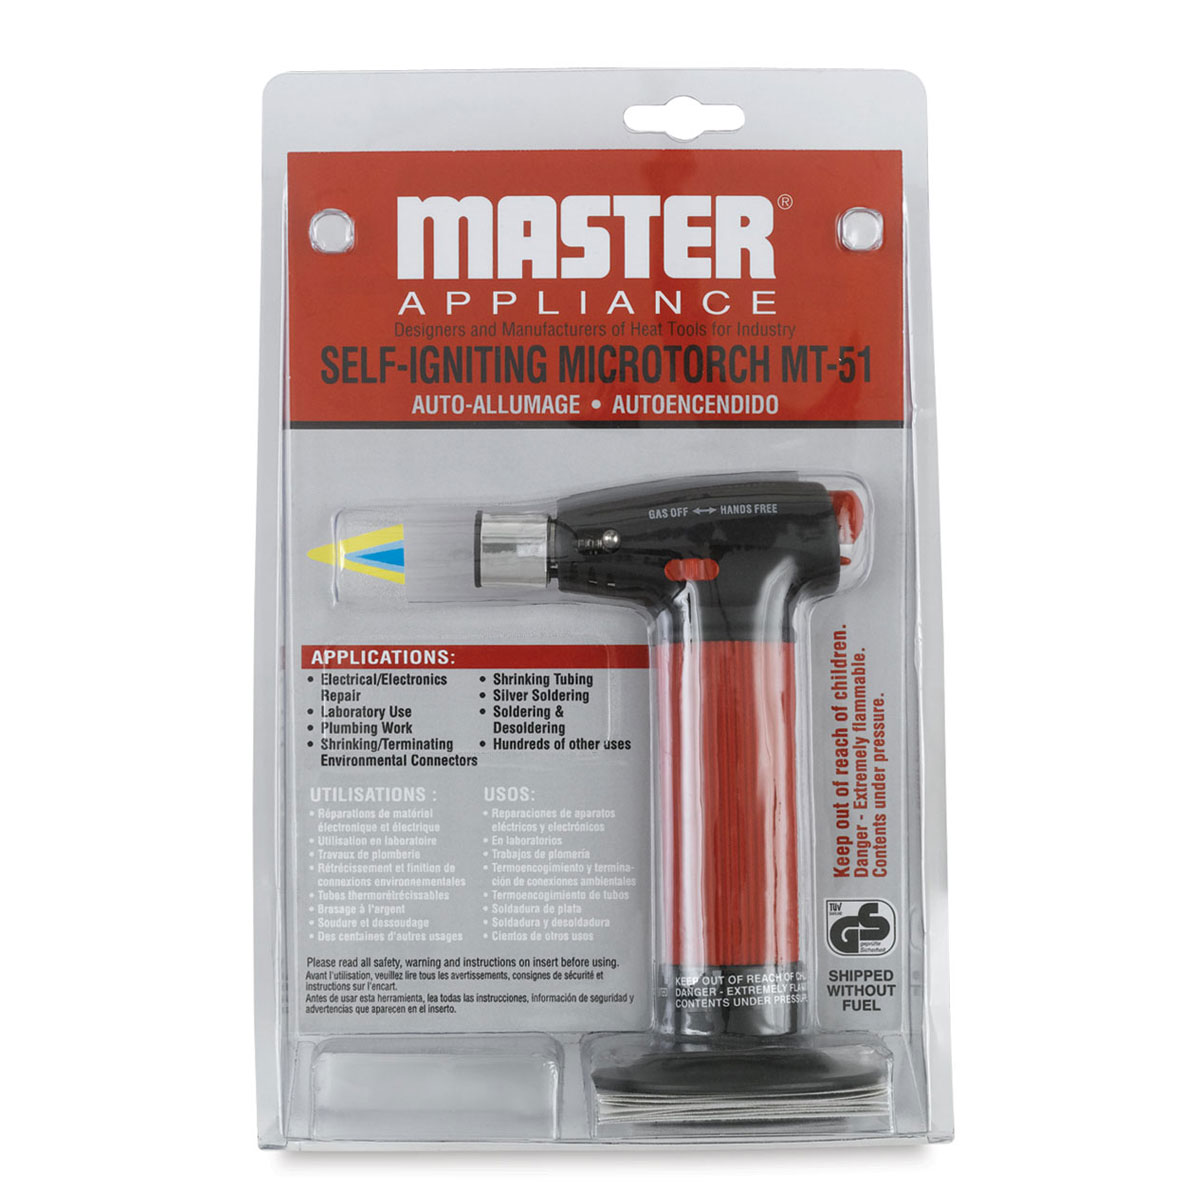 Microtorch,w Tank and Hands Free Lock MASTER APPLIANCE MT-51